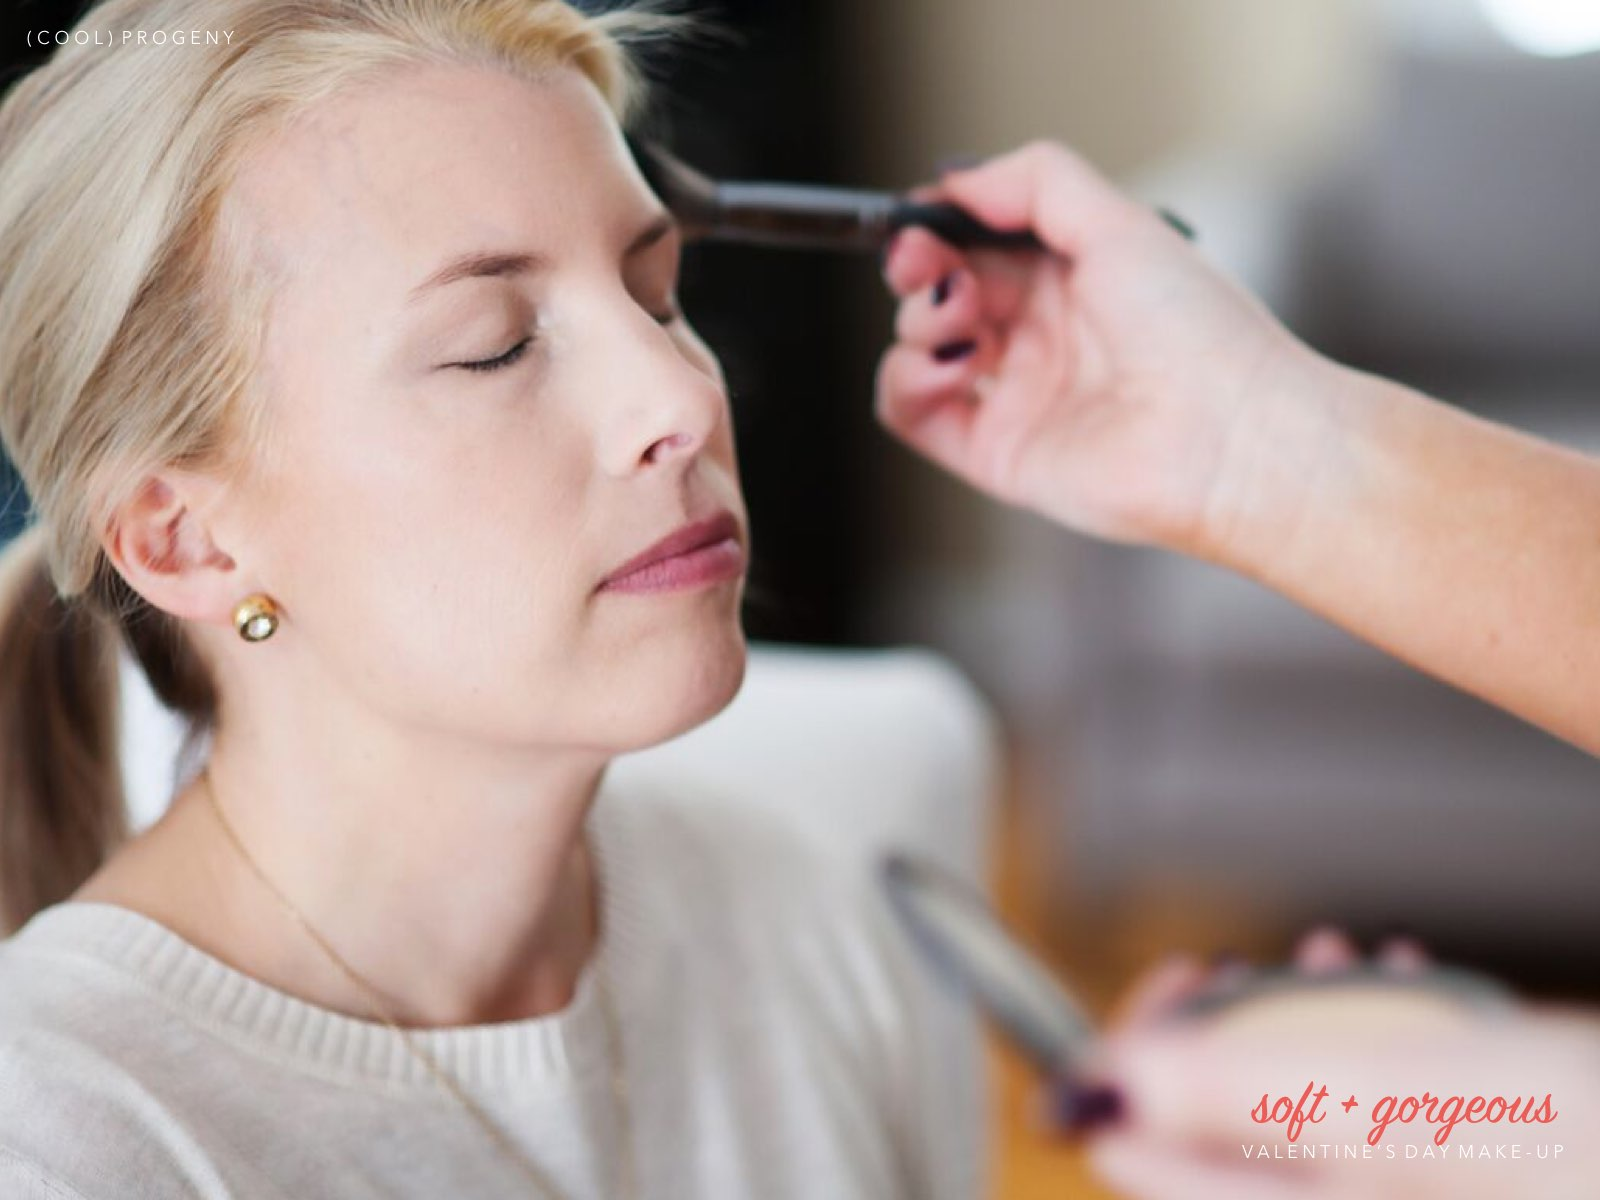 soft and gorgeous valentine's day make-up - (cool) progeny